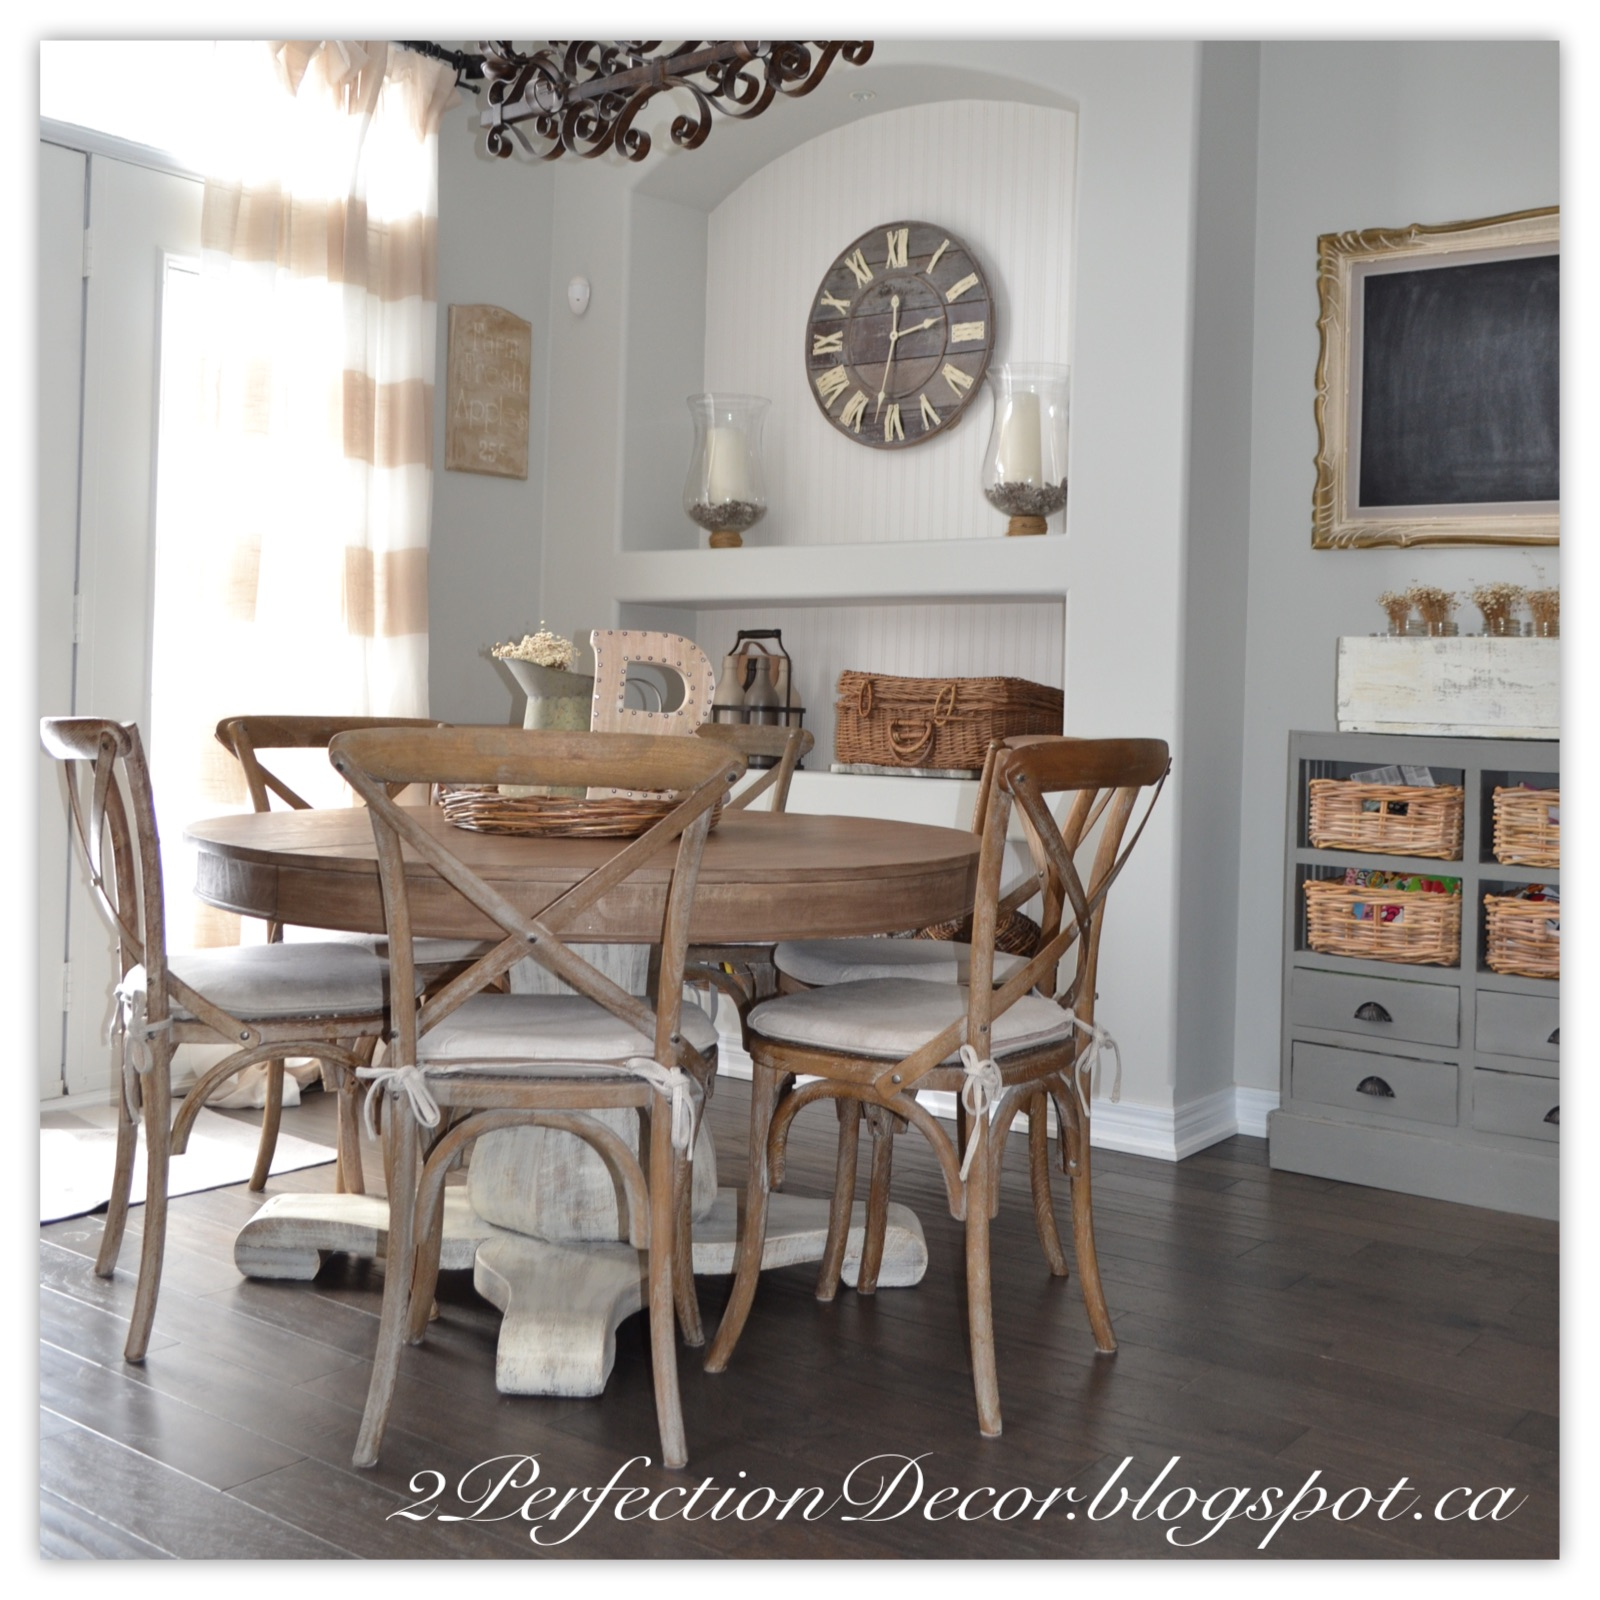 Kitchen Table Round: 2Perfection Decor: Round Kitchen Table Makeover